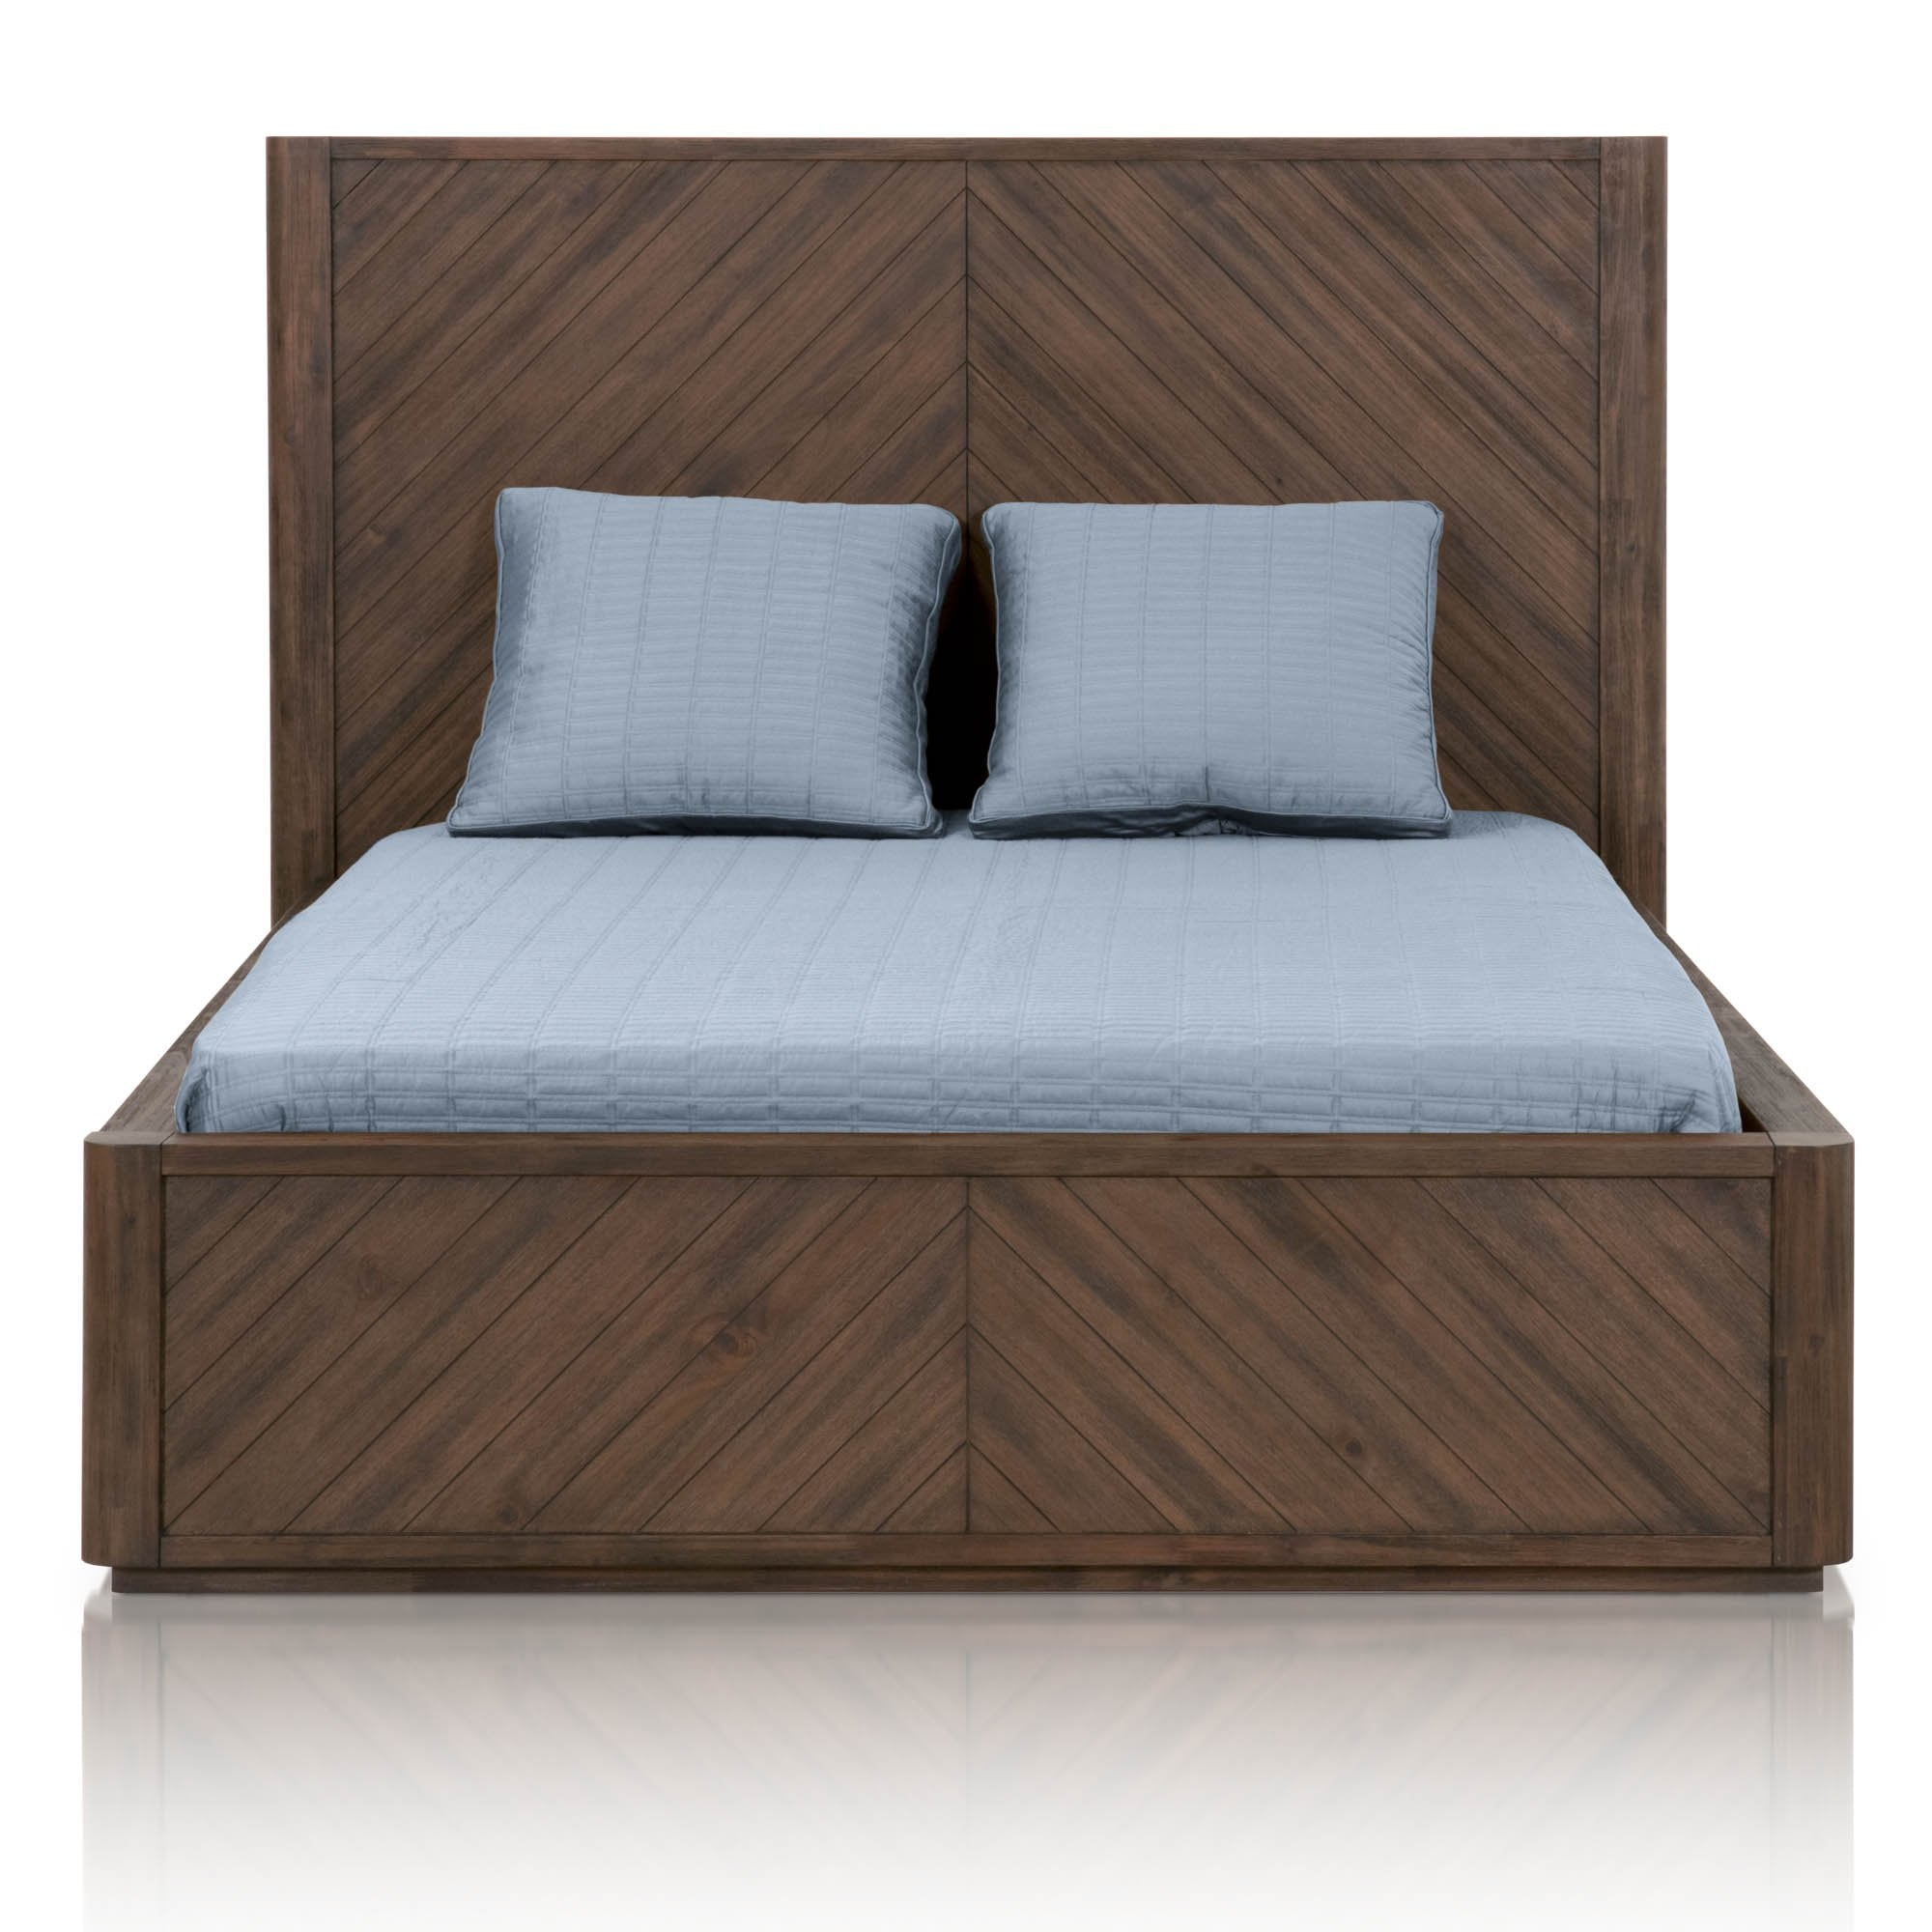 Apex Standard King Bed